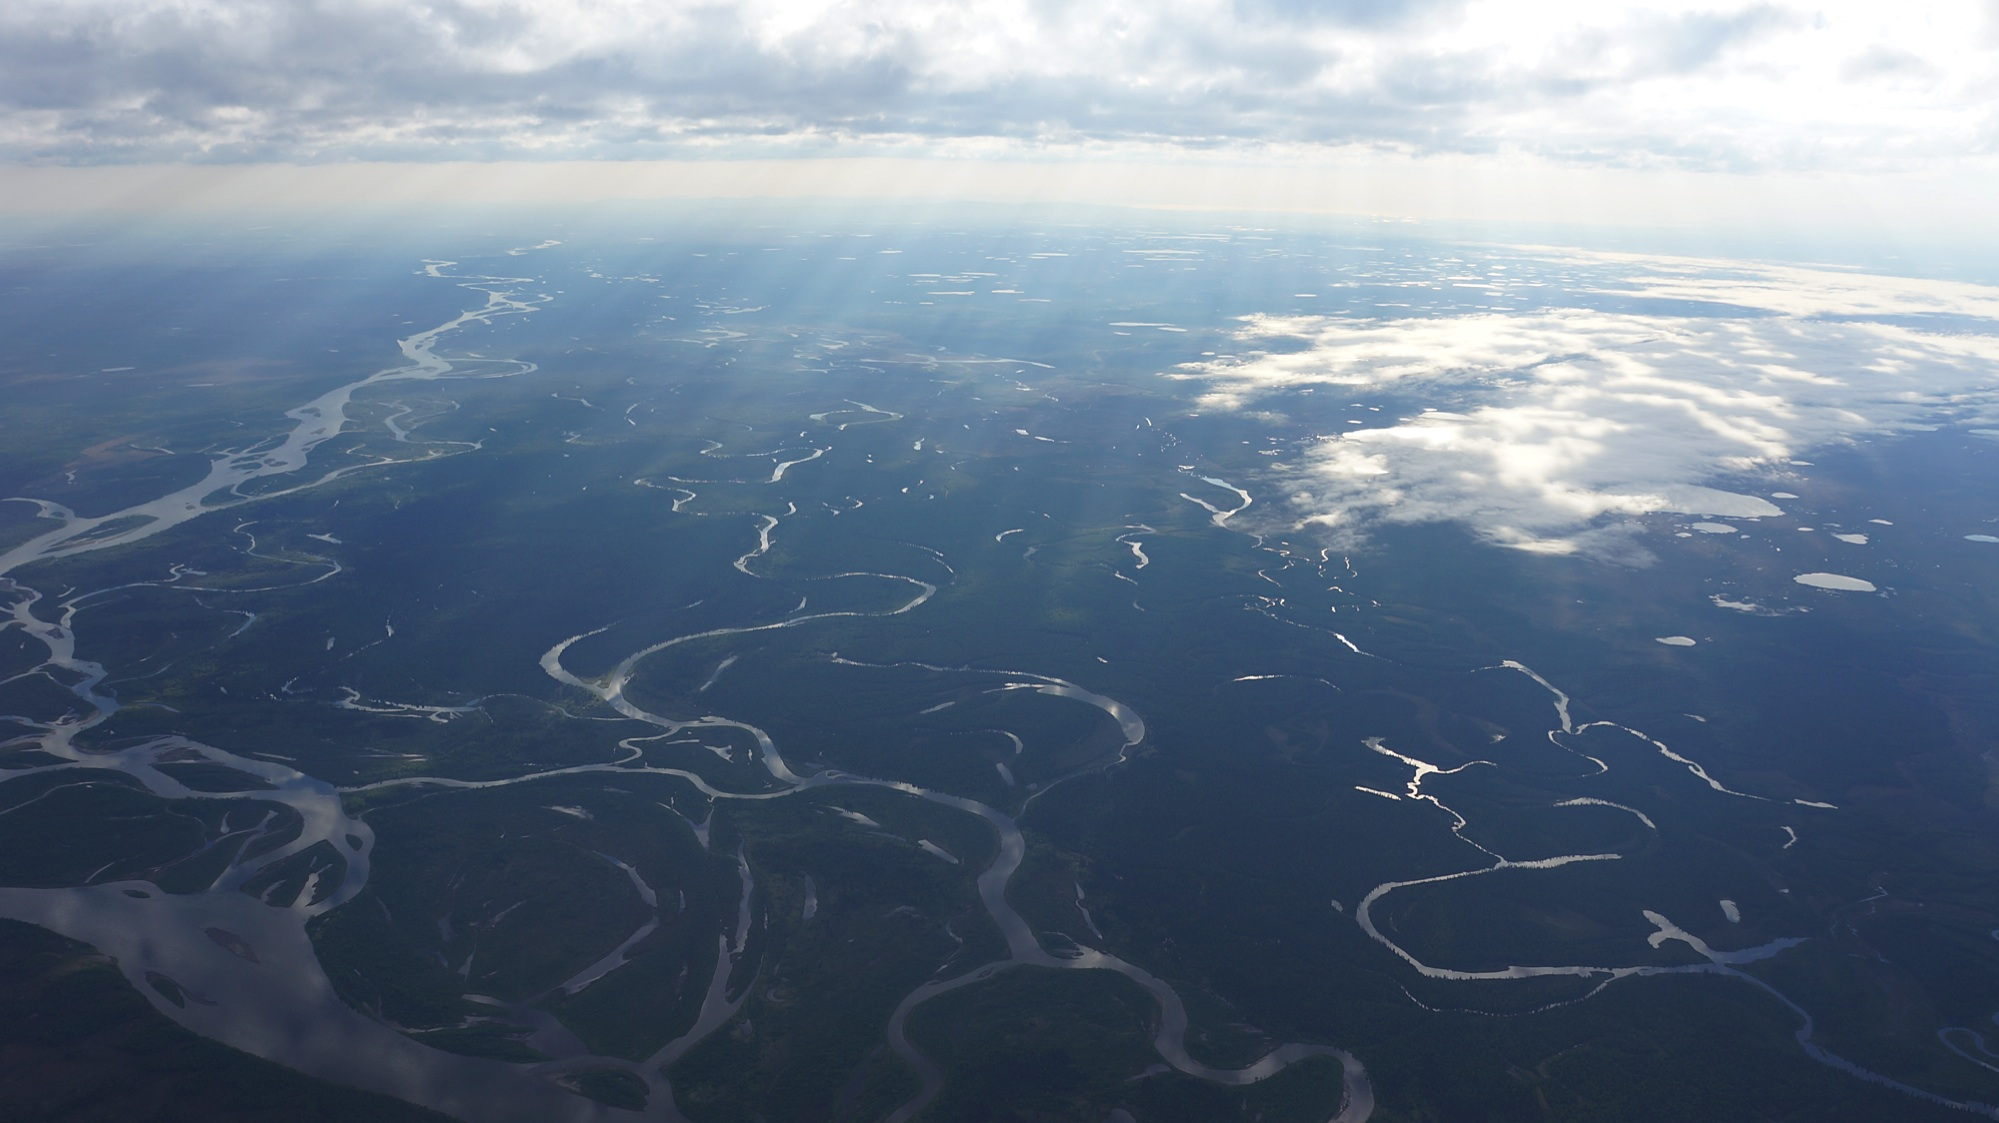 The Nushagak Watershed. These are the rivers where the salmon have returned to spawn every year for thousands of years. The habitat is pristine and the water clear and cold. It is threaded ornately with rivers...